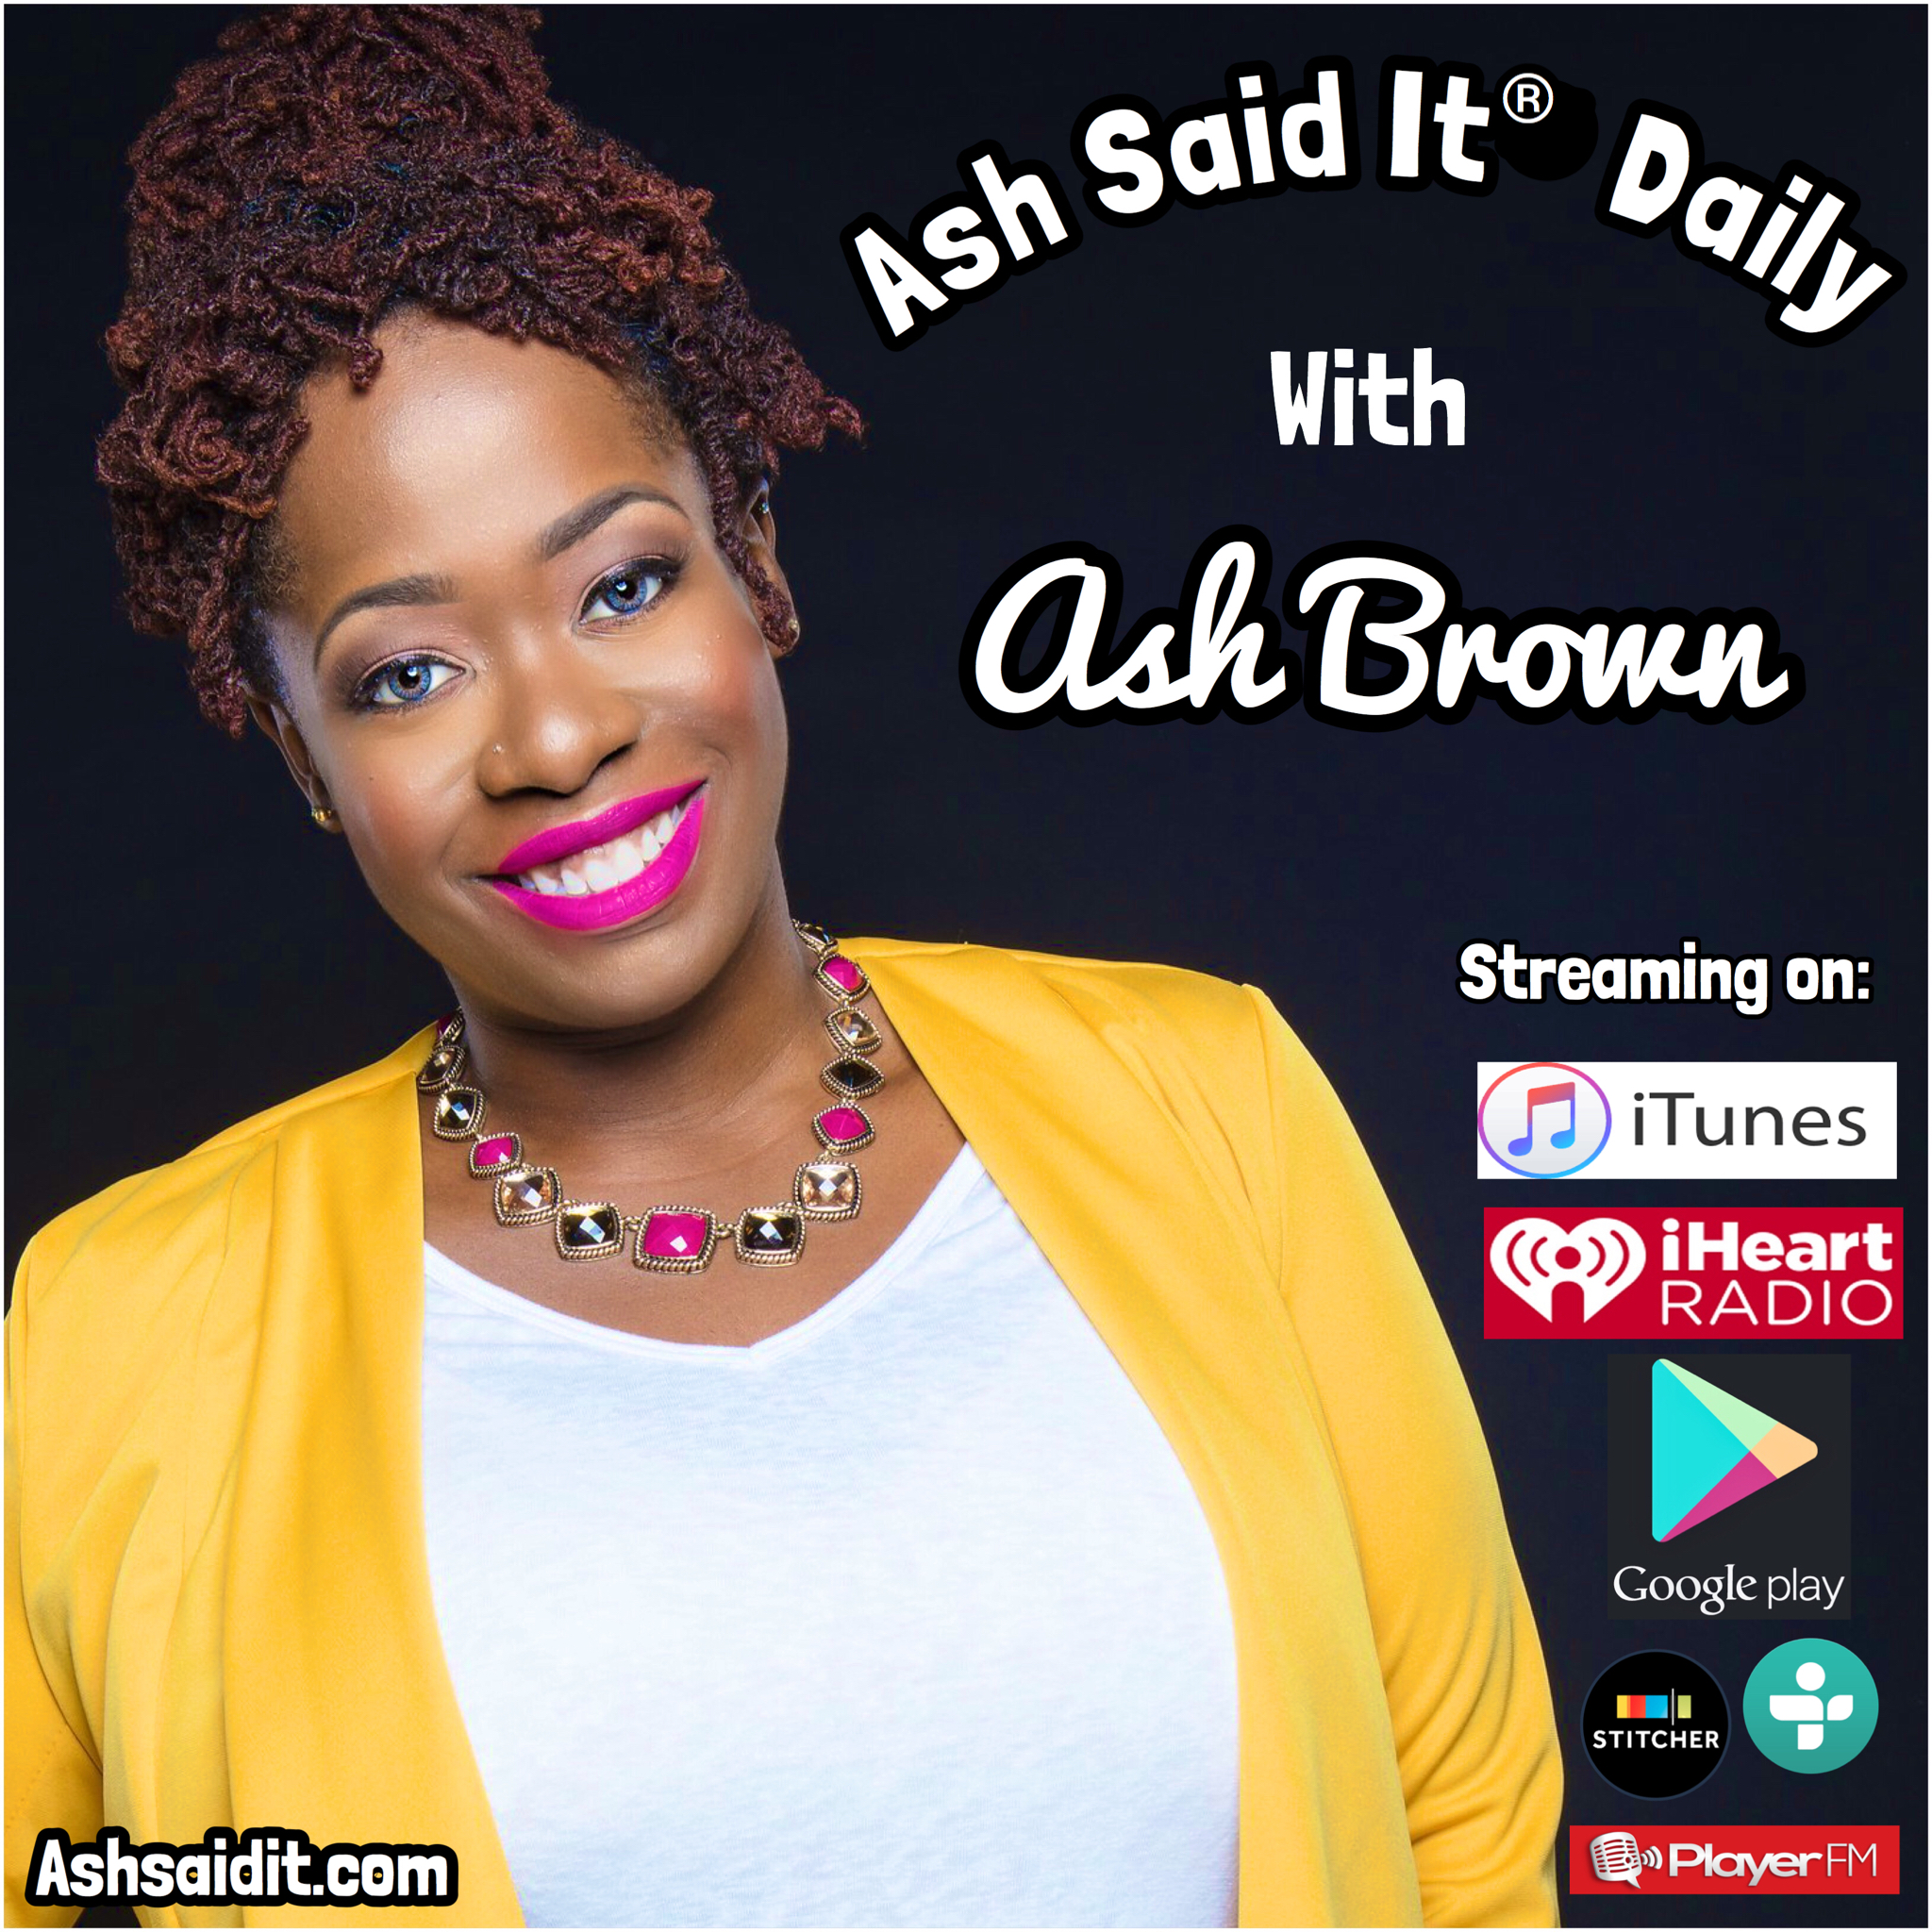 1 Mention on 'Ash Said It Daily' Podcast